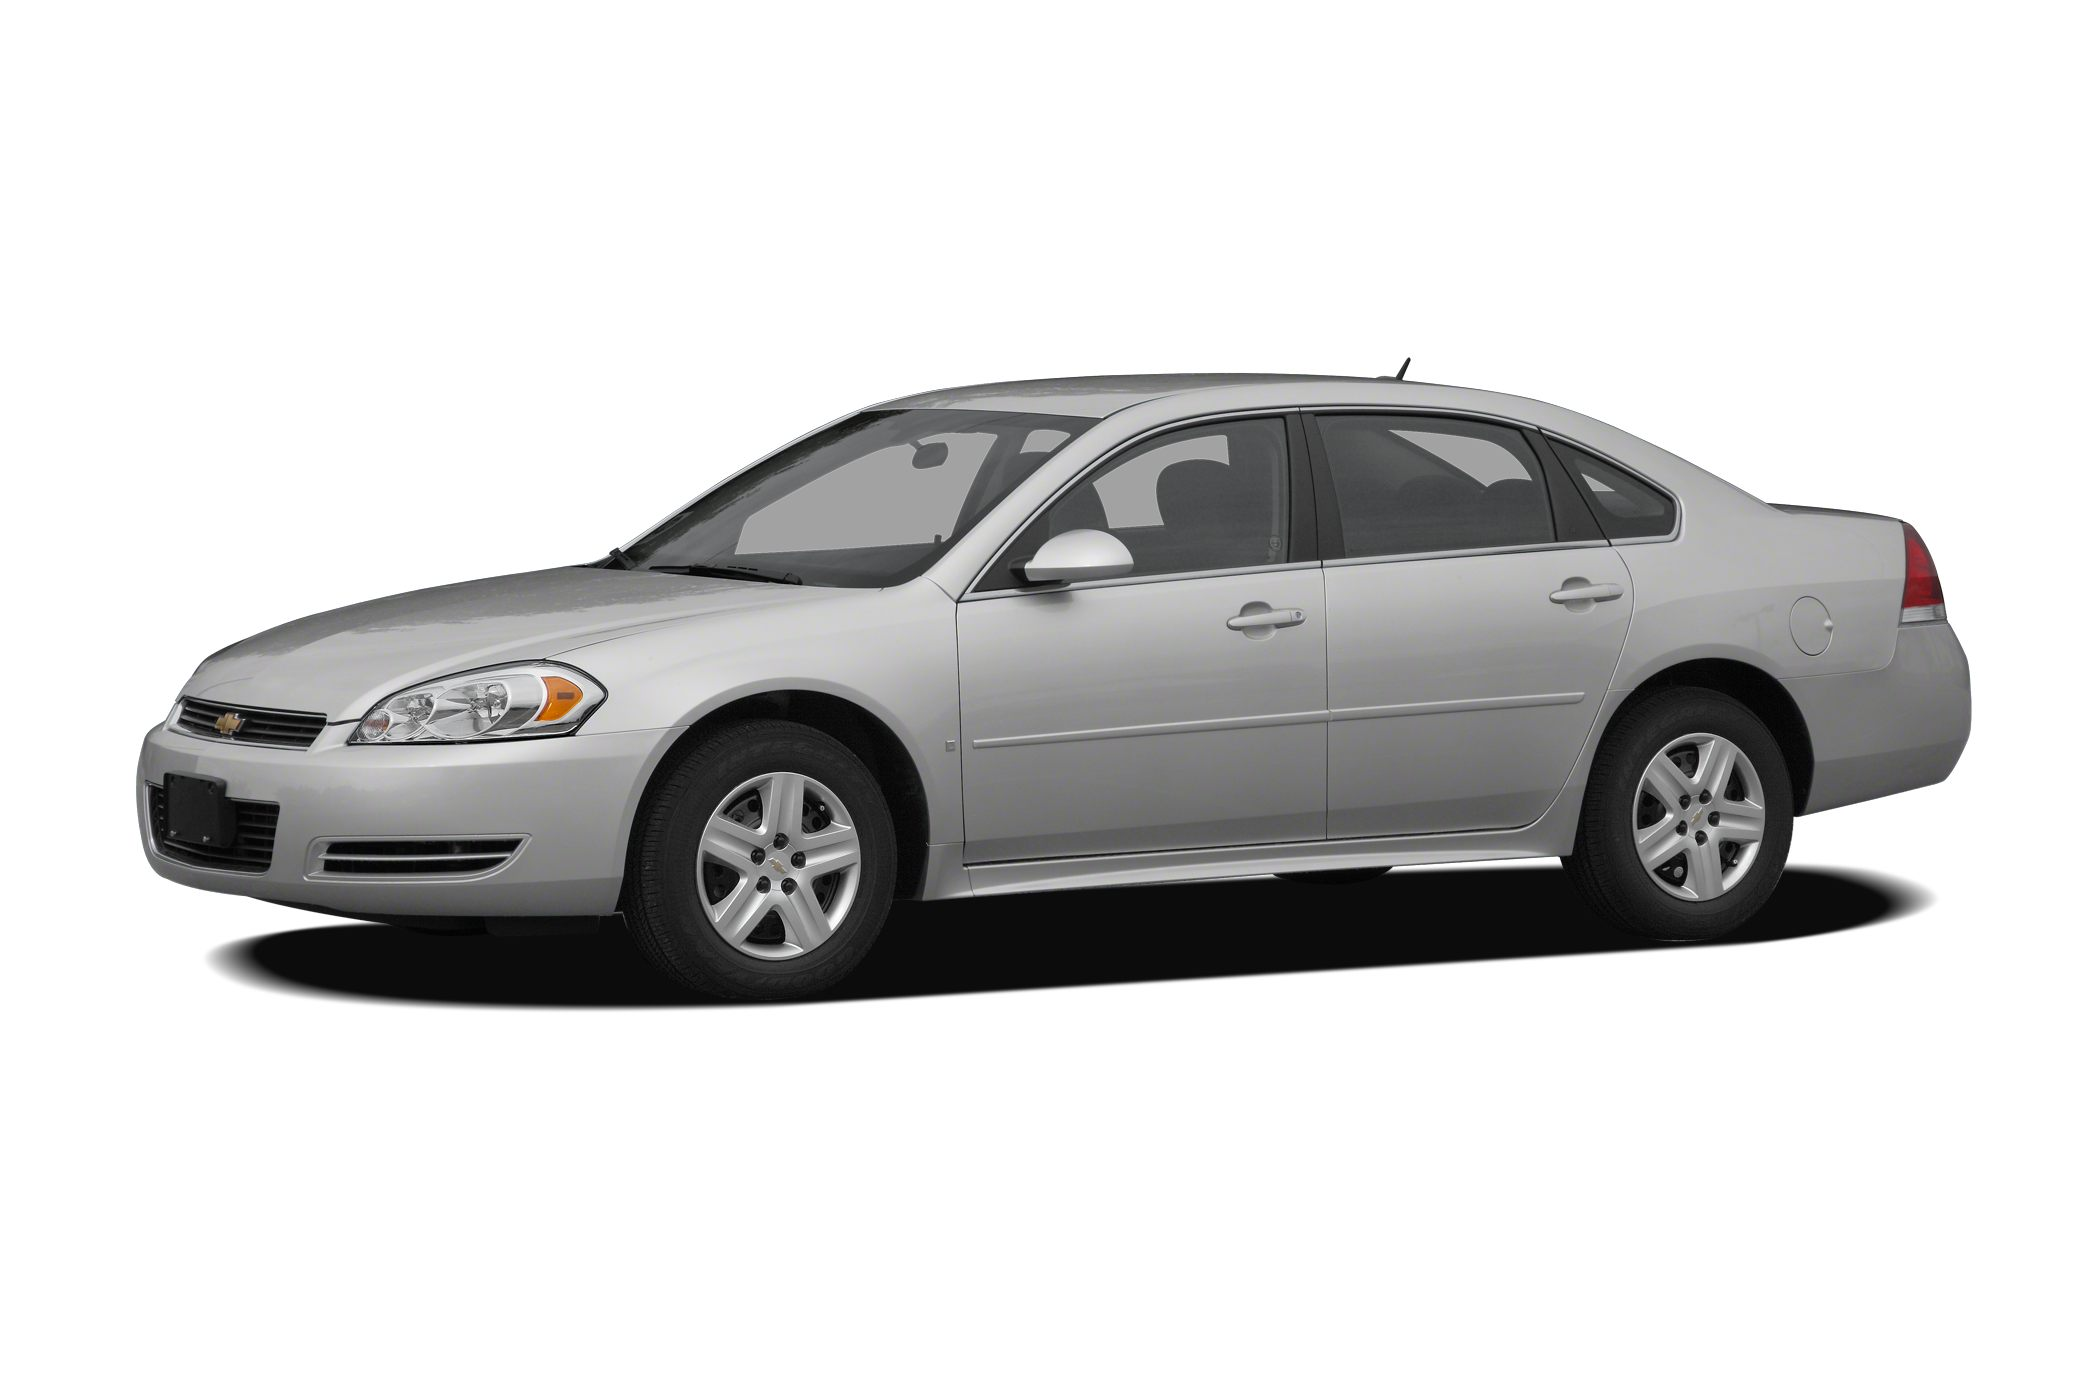 2010 Chevrolet Impala LT Sedan for sale in Upper Marlboro for $8,975 with 90,418 miles.